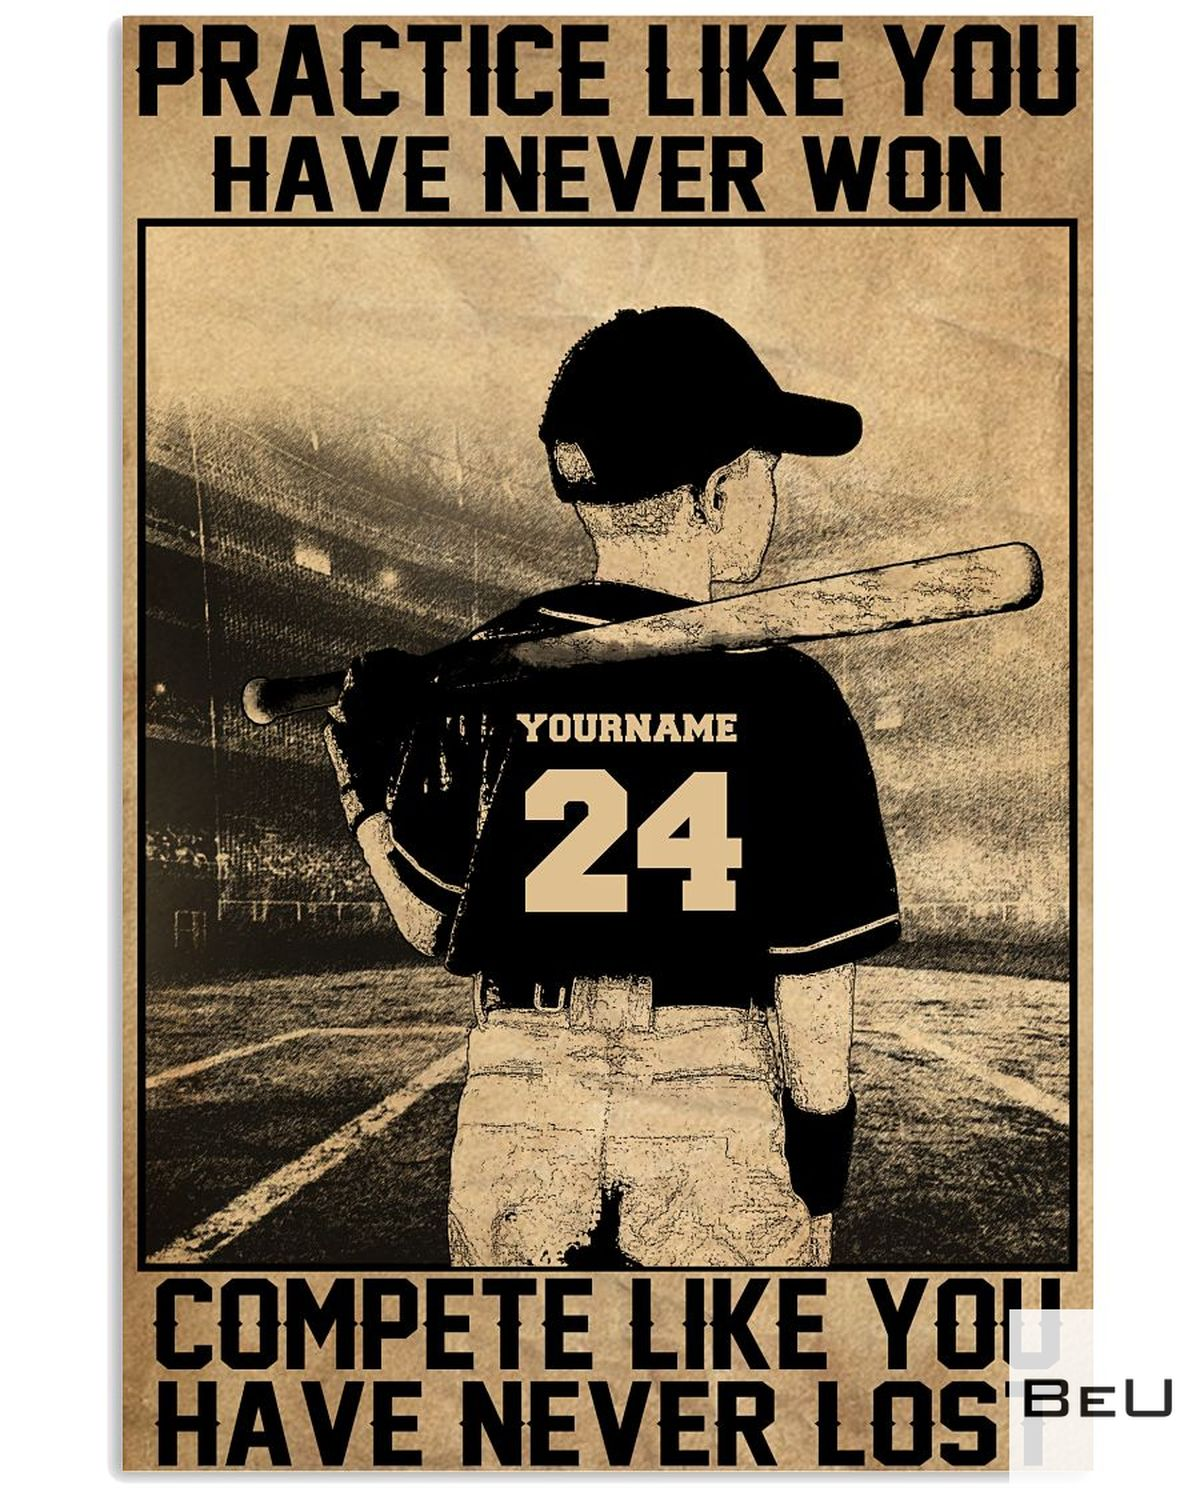 Personalized Baseball Batter Practice Like You Have Never Won Complete Like You Have Never Lost Poster